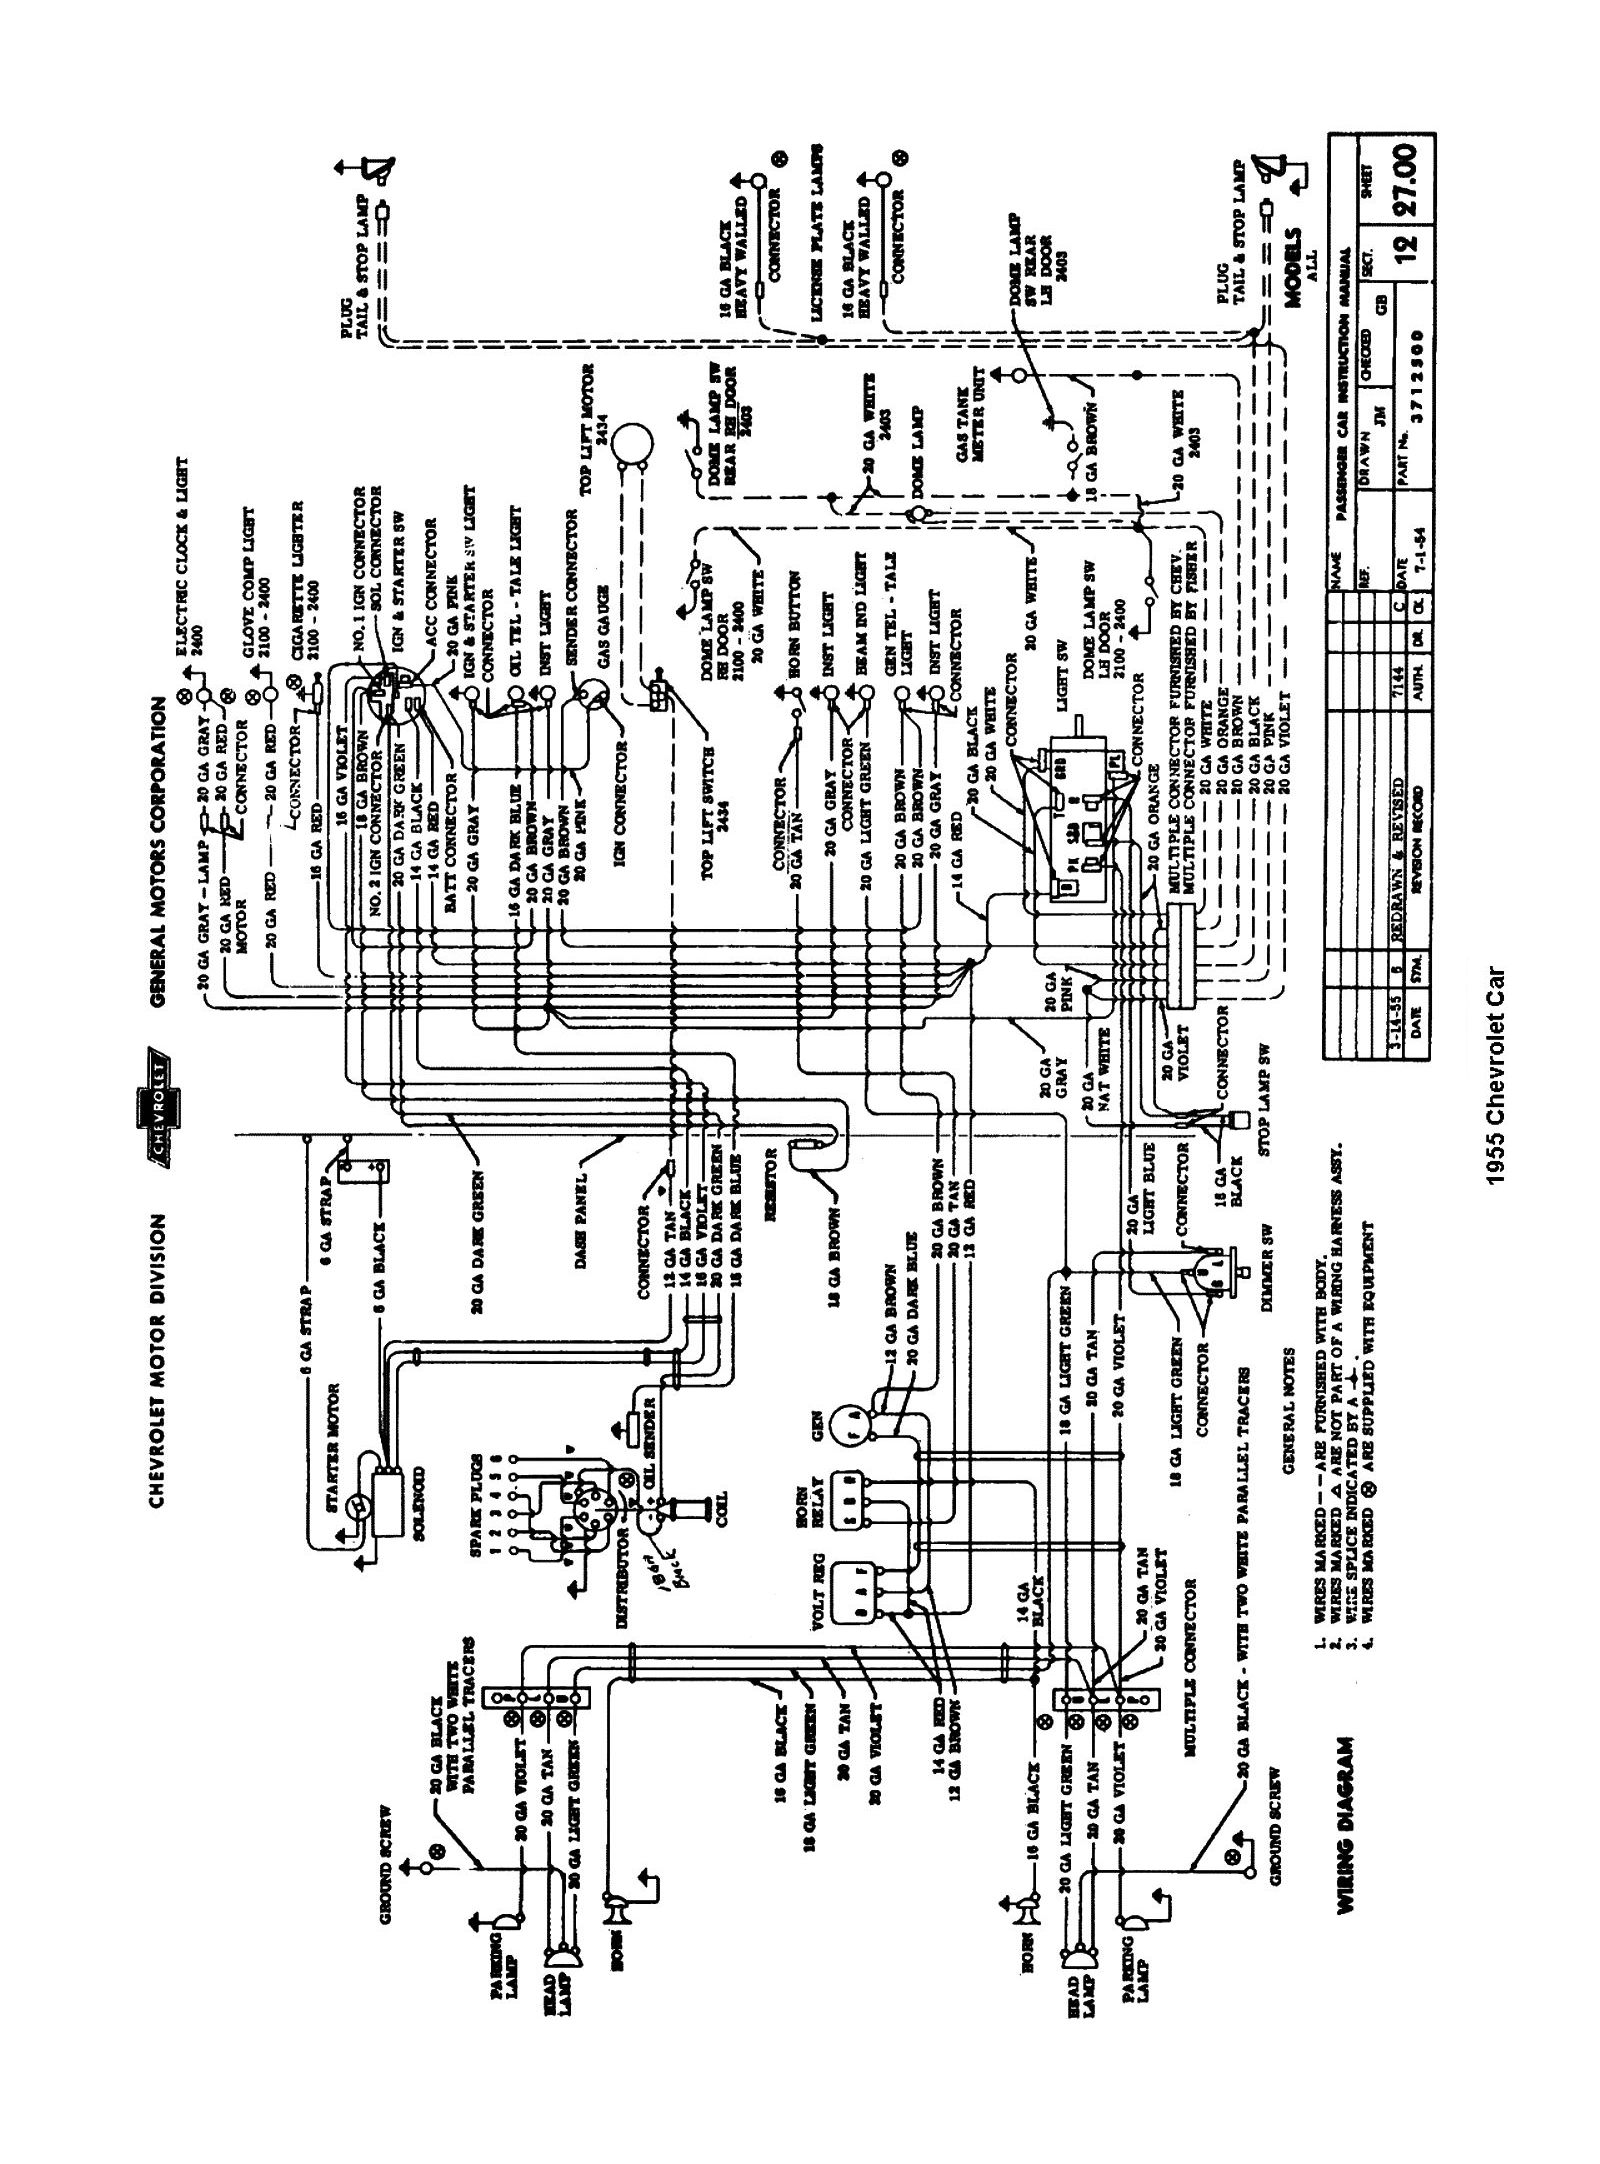 55car1 chevy wiring diagrams 1955 chevy horn wiring diagram at gsmx.co